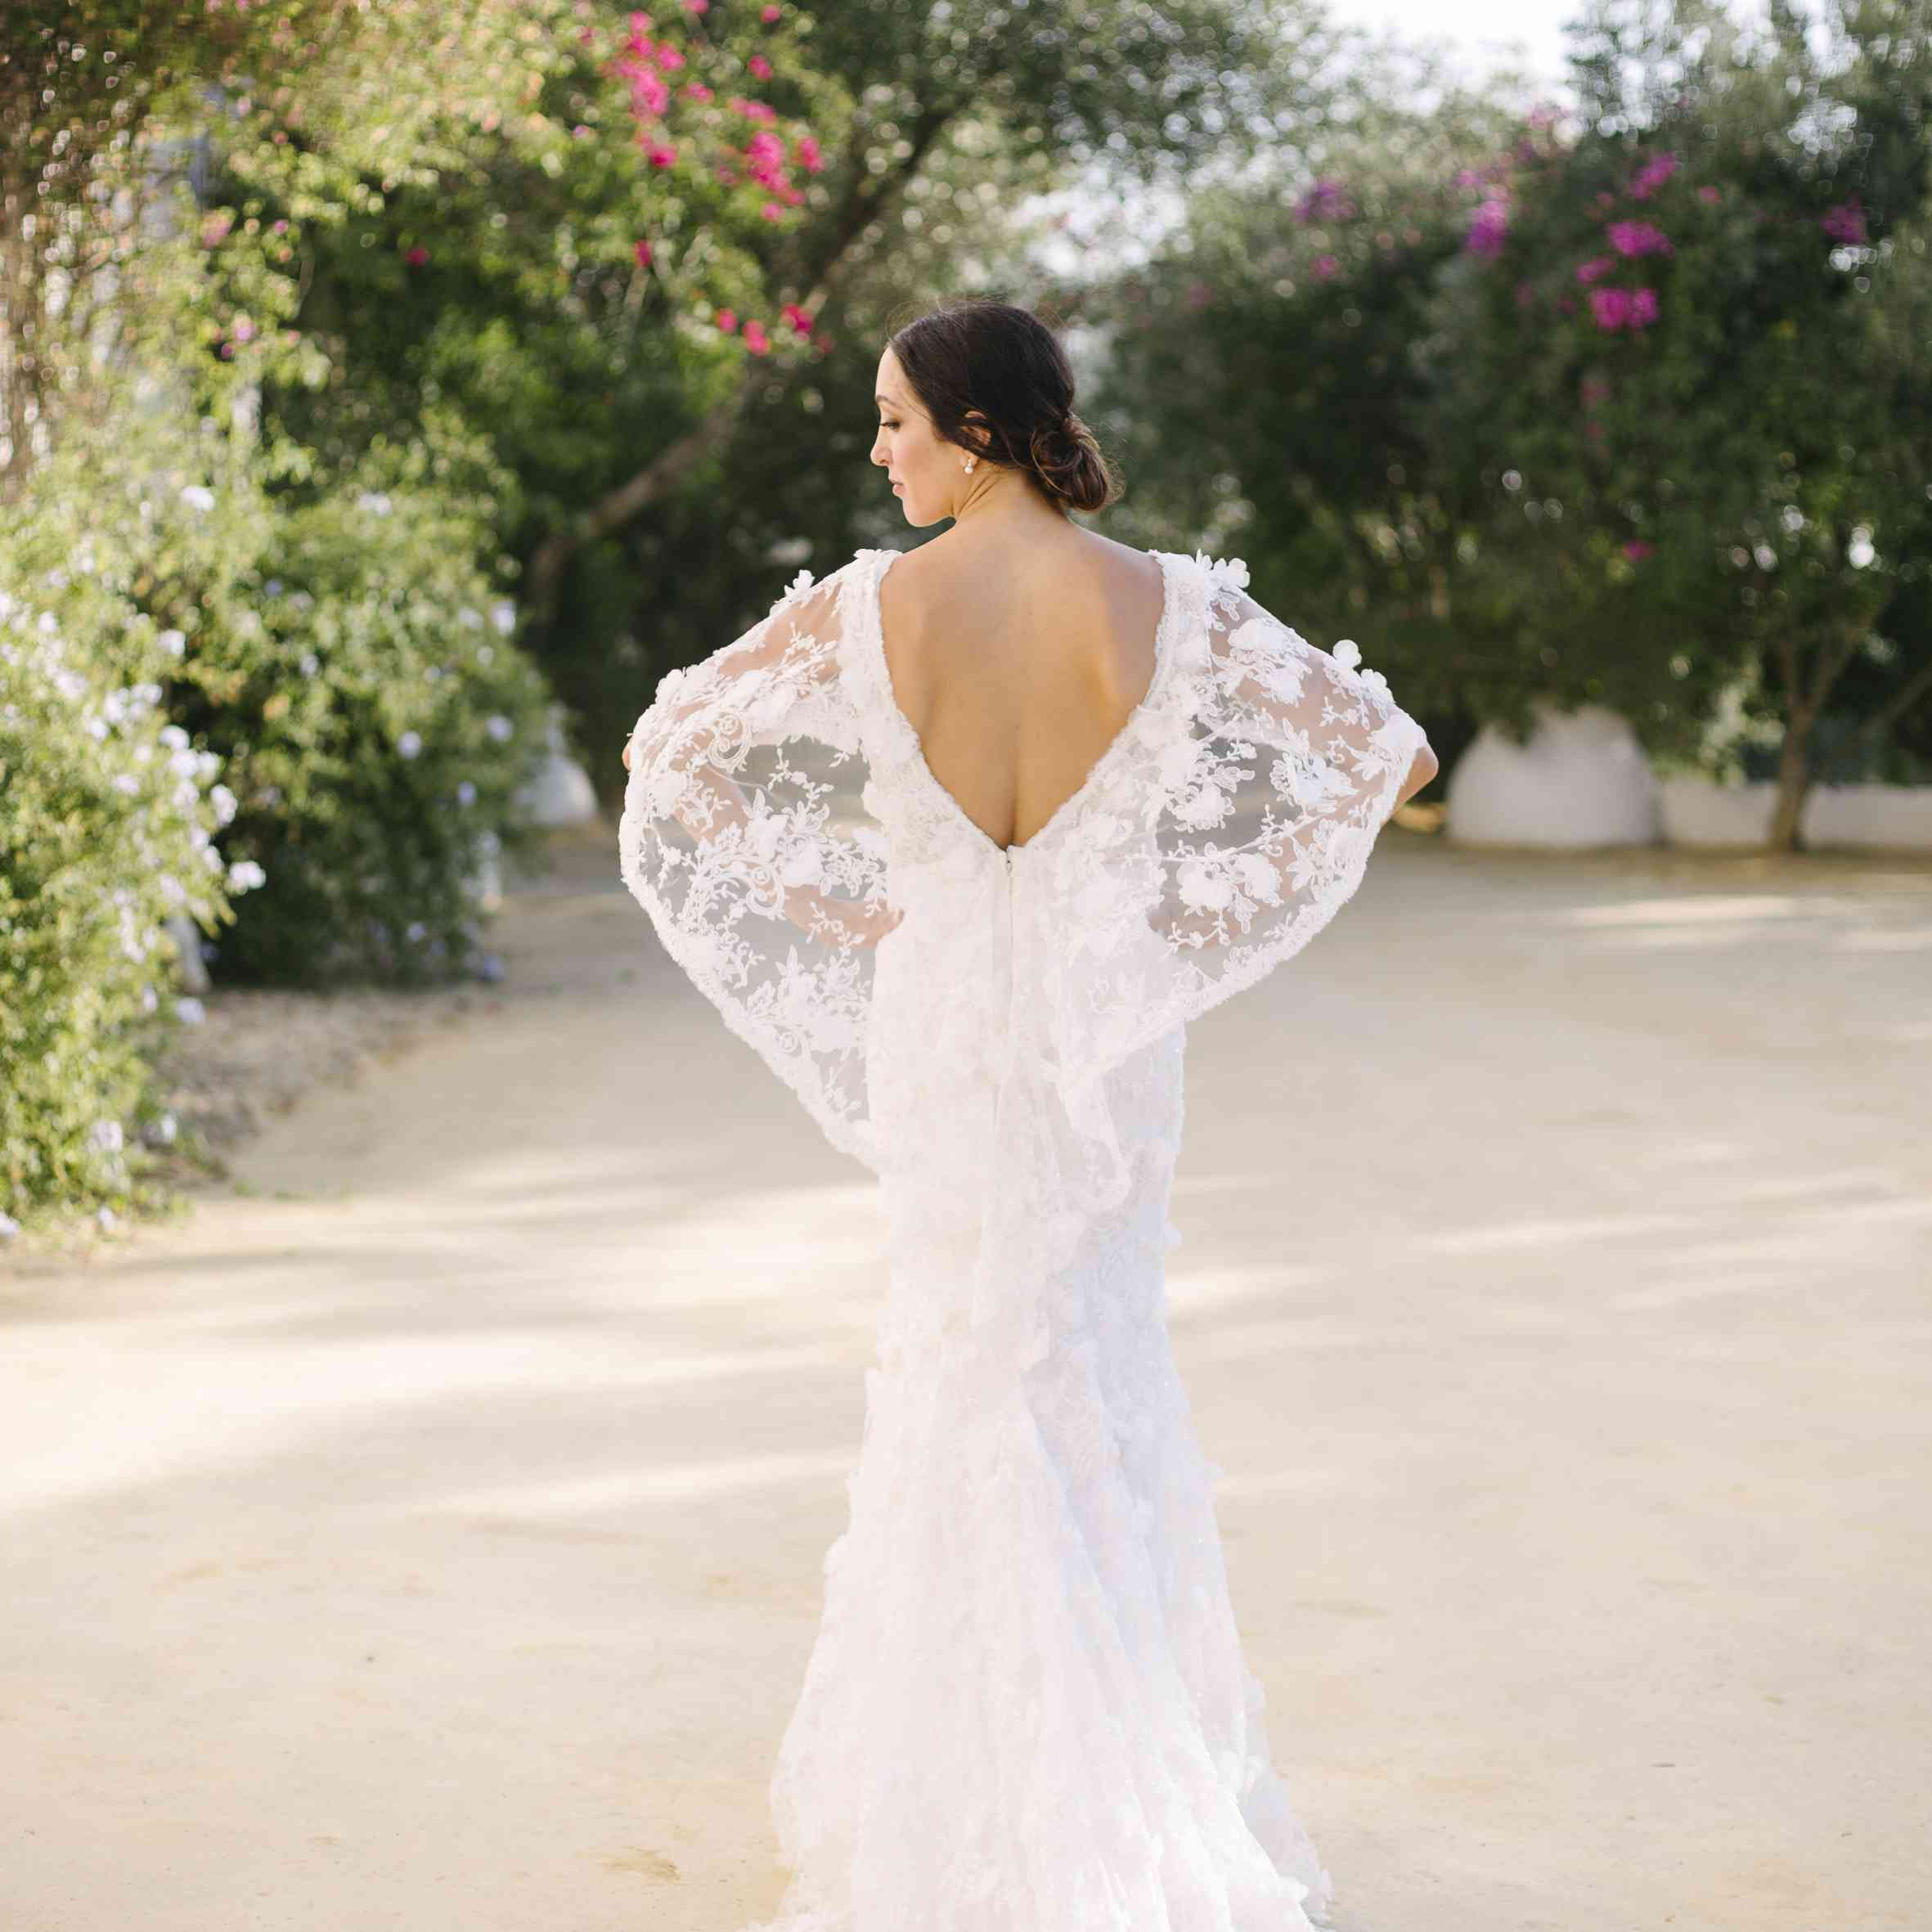 Bride from back